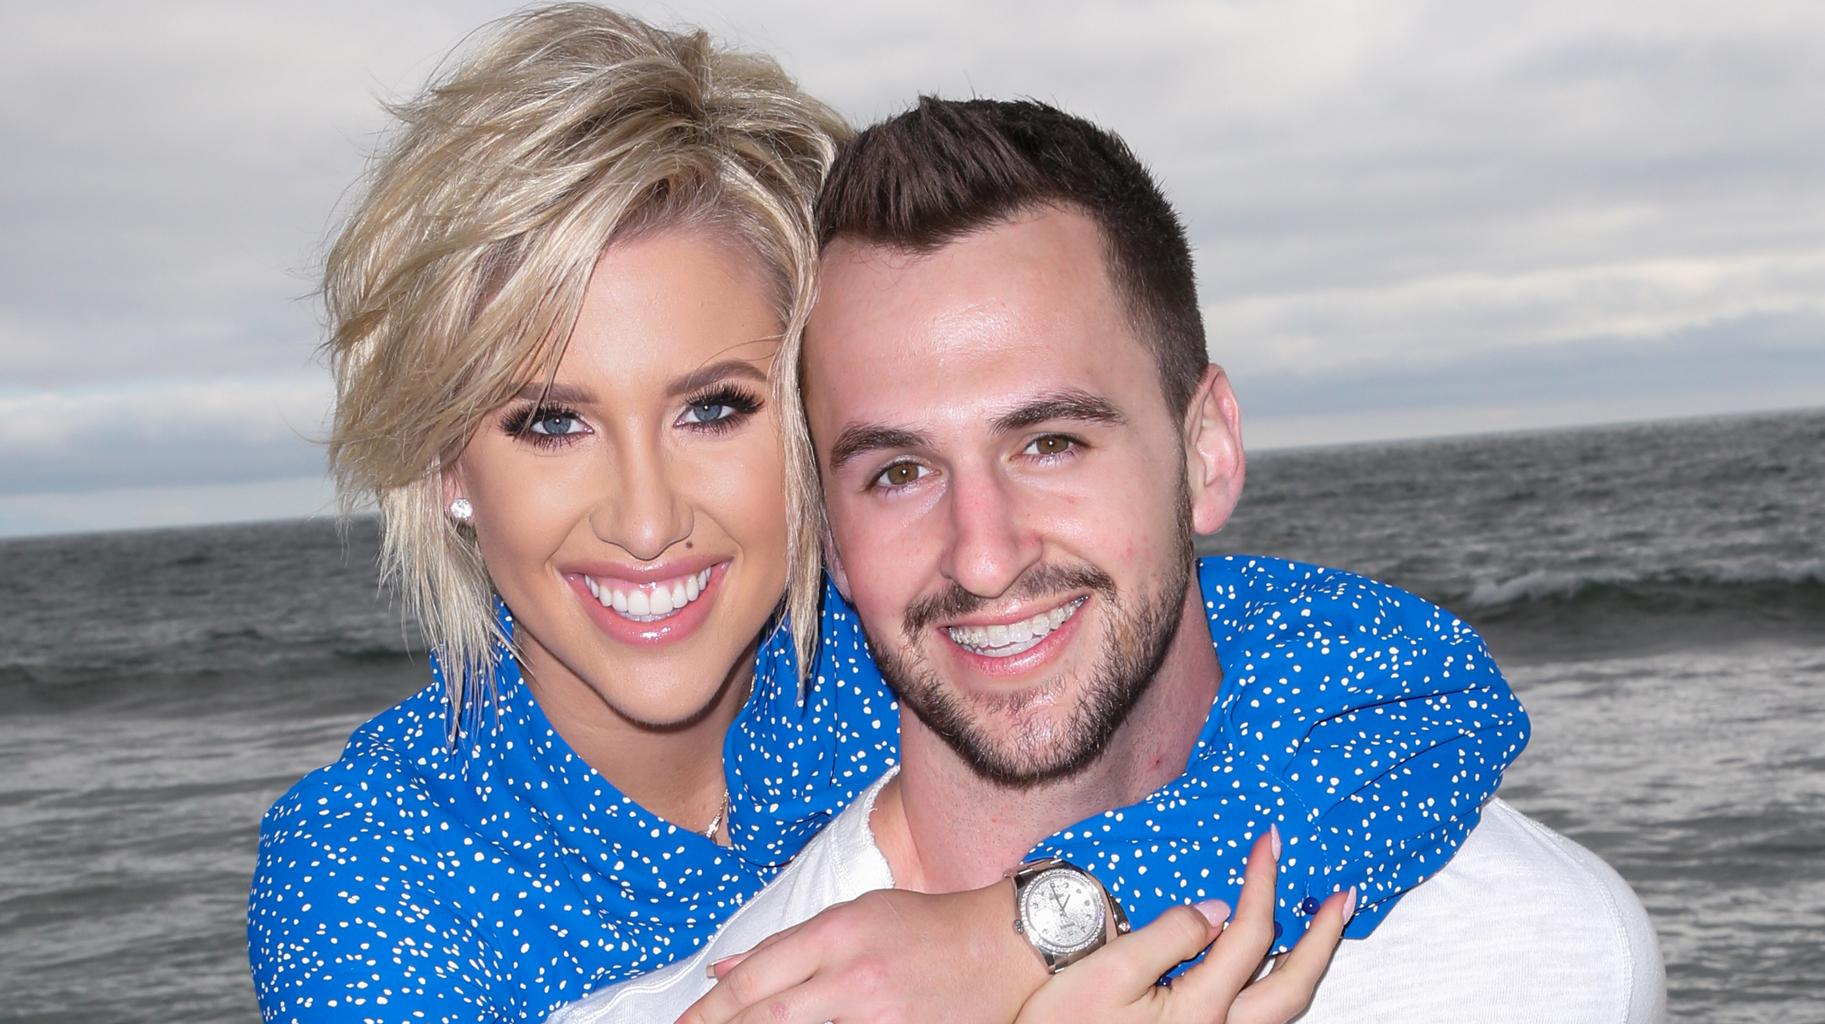 Savannah Chrisley And Nic Kerdiles Break Up After 3 Years - Check Out Her Sad Announcement!